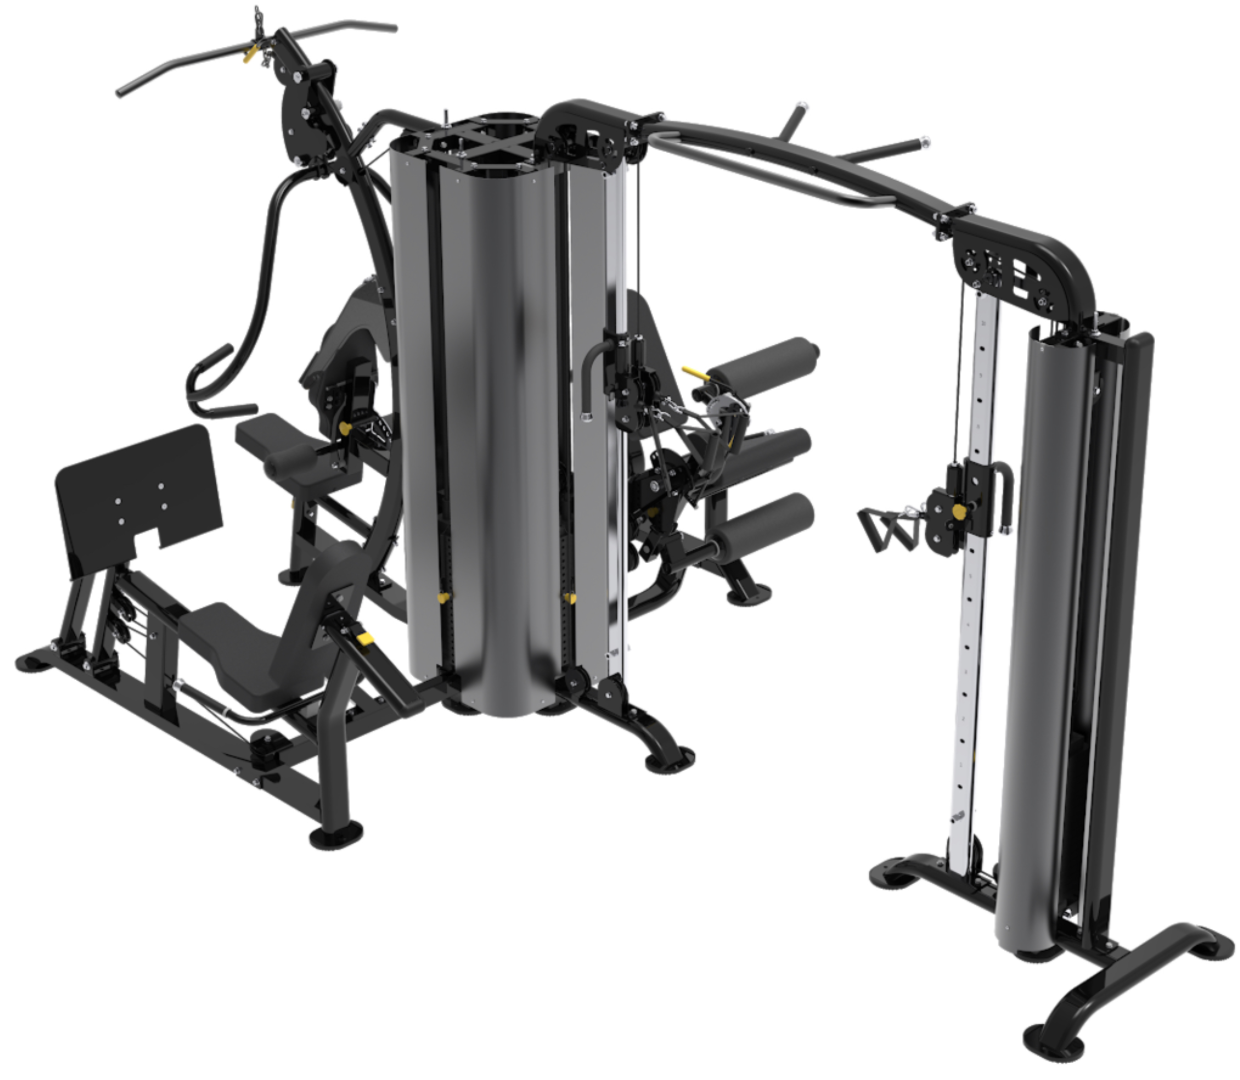 New XPT 5 Station Multi-Gym with Leg Press & Dual Cable Cross Functional Trainer